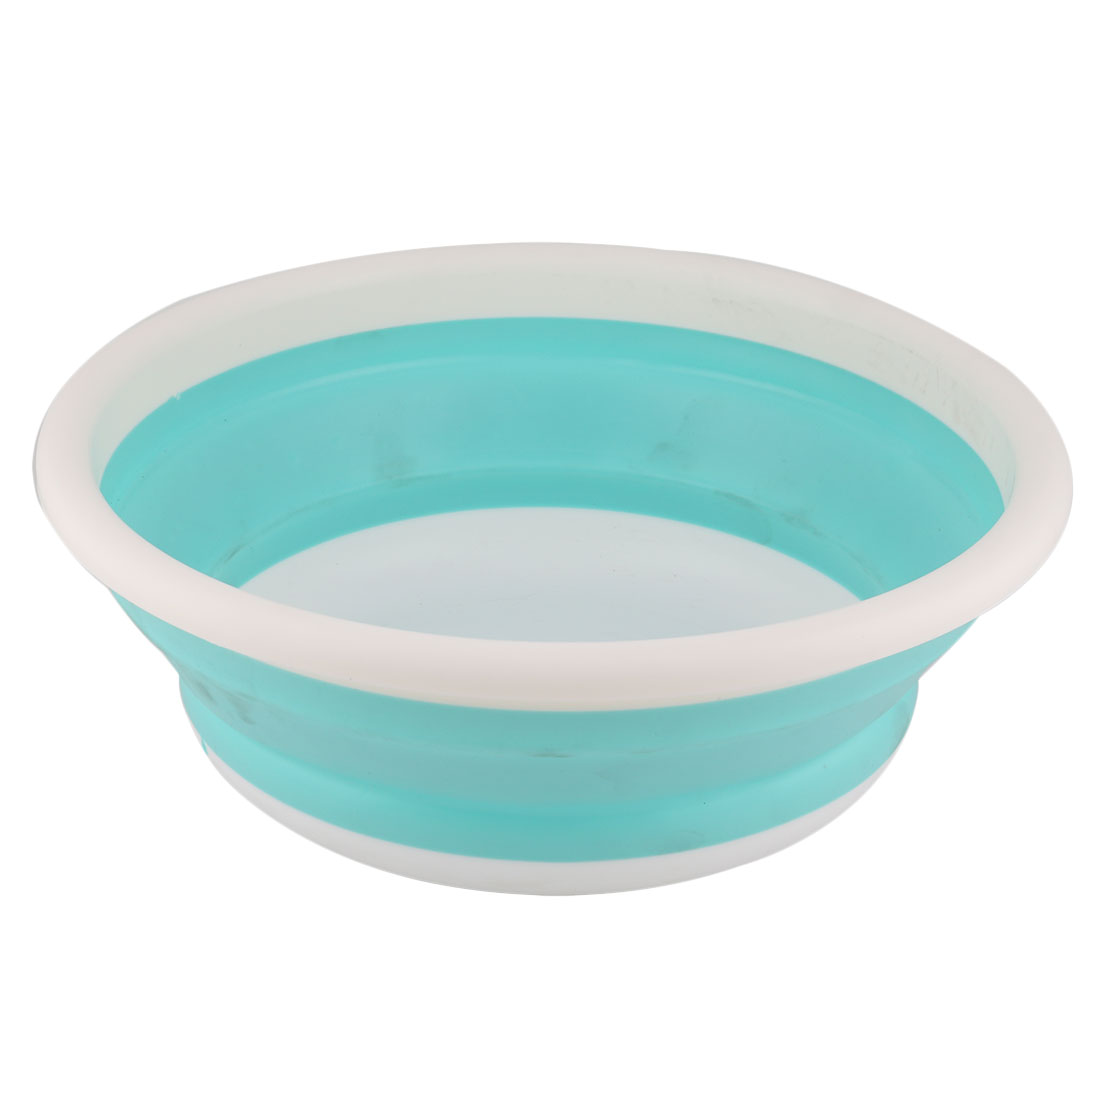 Home Outdoor Plastic Portable Folding Foldable Wash Basin Water Storage Container Holder Blue